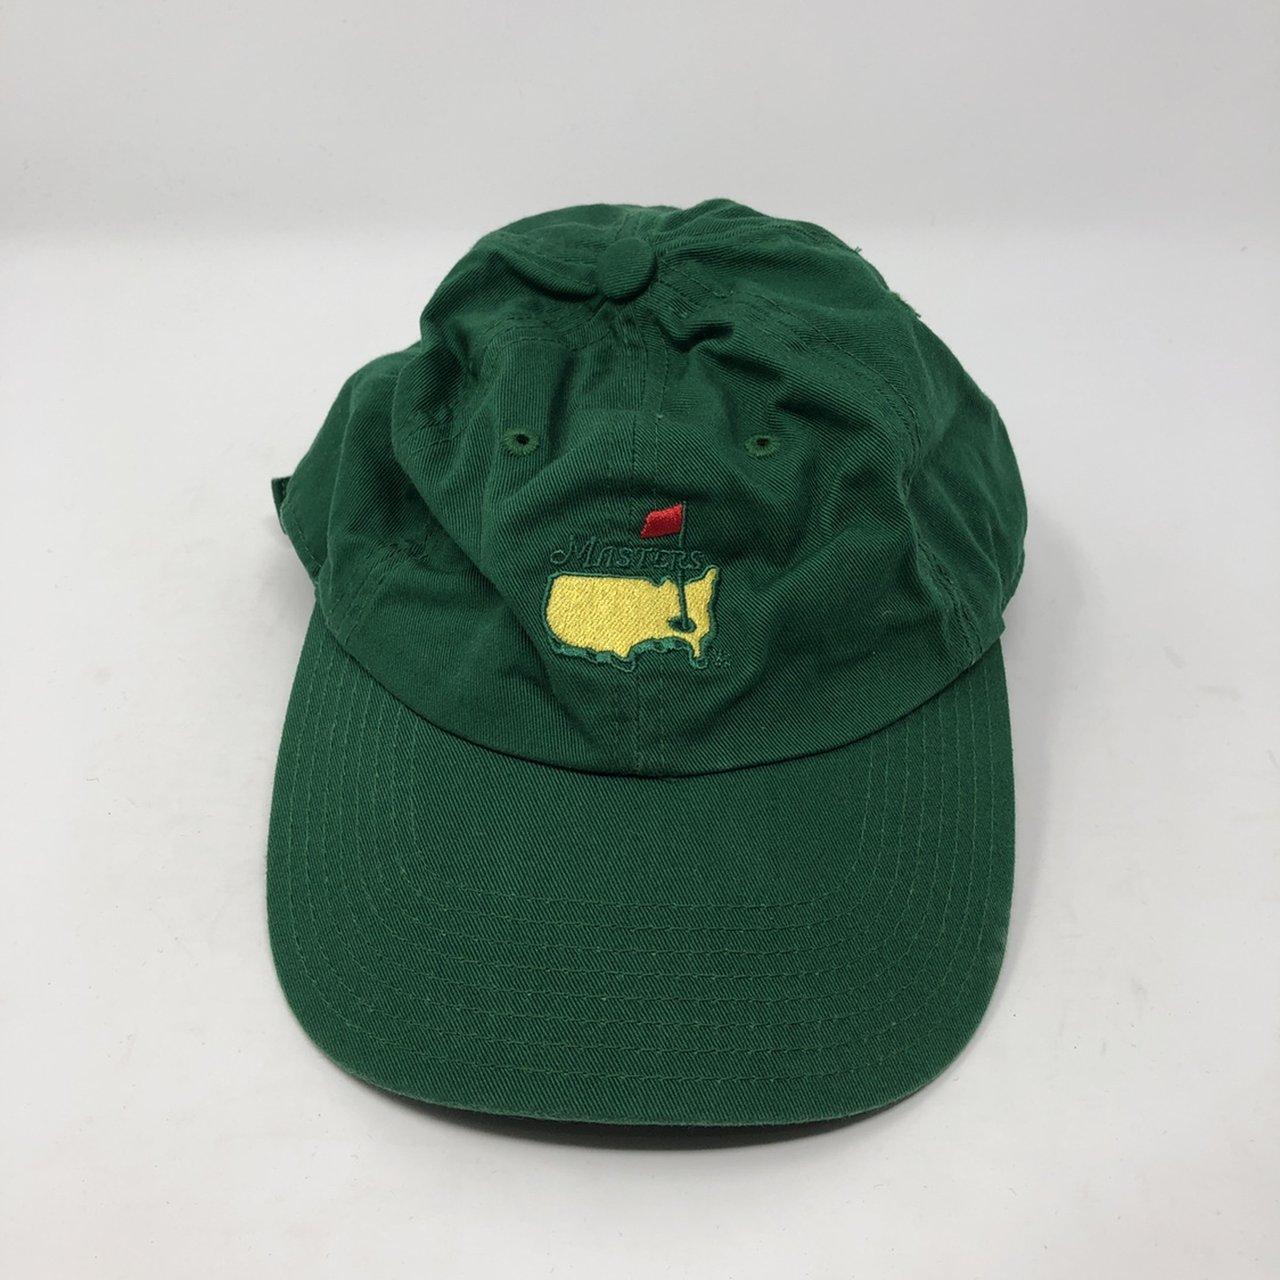 574b7c85ddacf The Masters Golf Hat by American Needle. Overall good - Depop